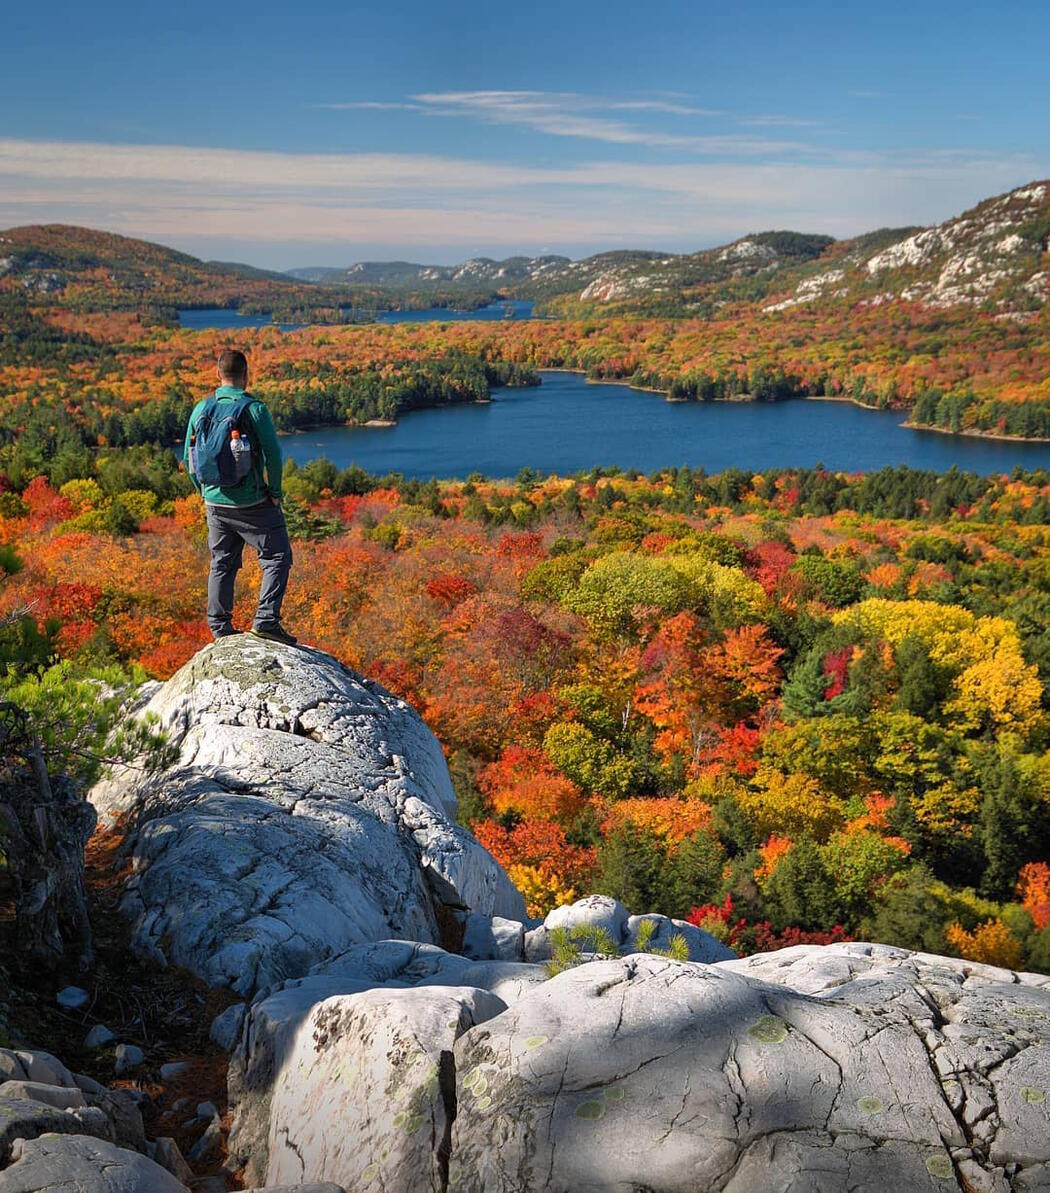 Man standing on a rock lookout viewing colourful trees and lake in the distance.